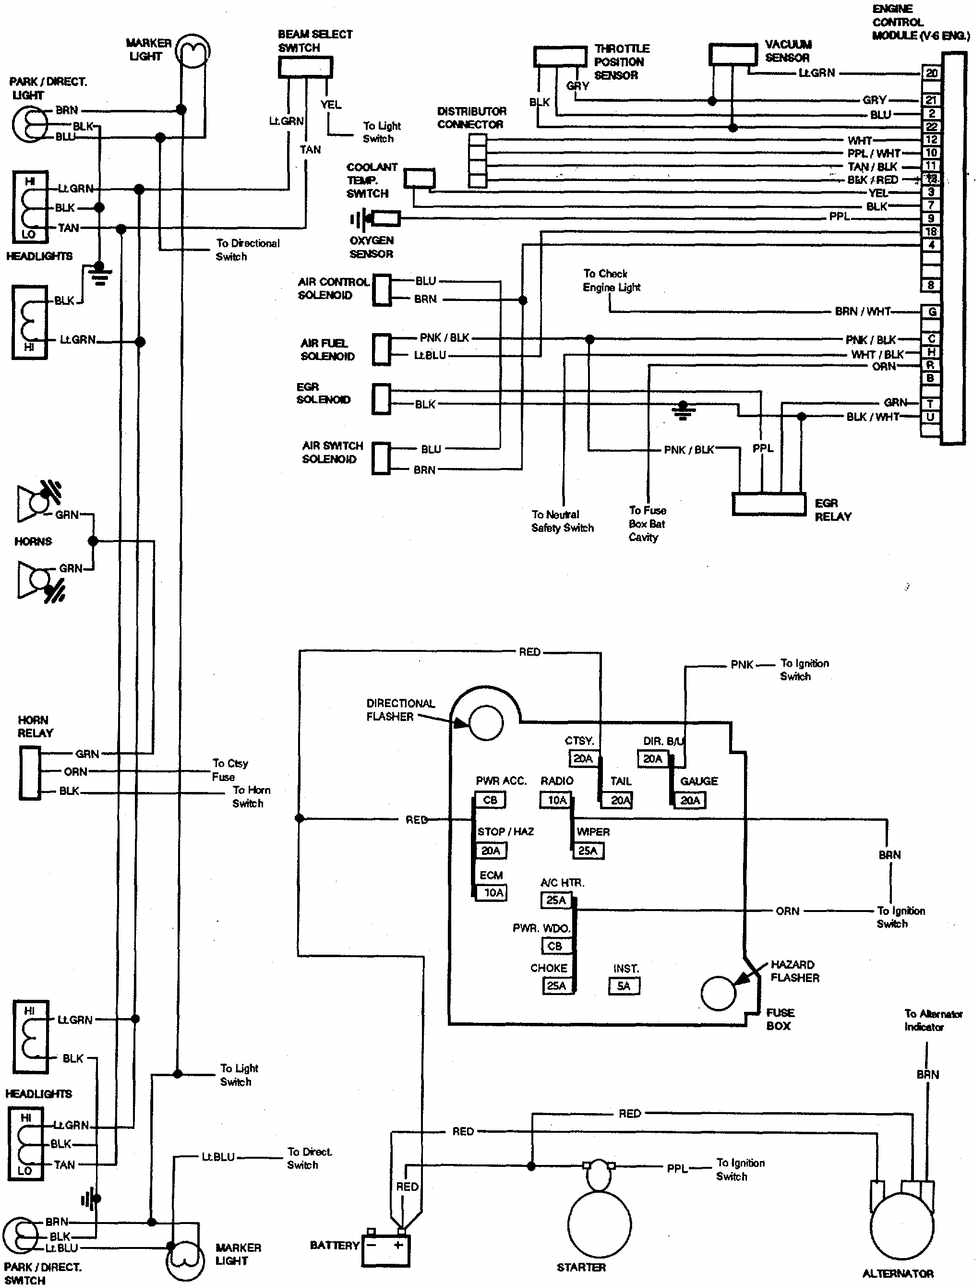 95 Ford F 350 Fuel Pump Wiring Diagram besides Engine Knock Sensor Toyota Tundra Location additionally 0x3no Fuel Pump Relay Located 1990 Corolla as well MediaExponent Car PC Android 44 2 DIN Universal together with Chevrolet V8 Trucks 1981 1987. on wiring harness 2000 toyota 4runner